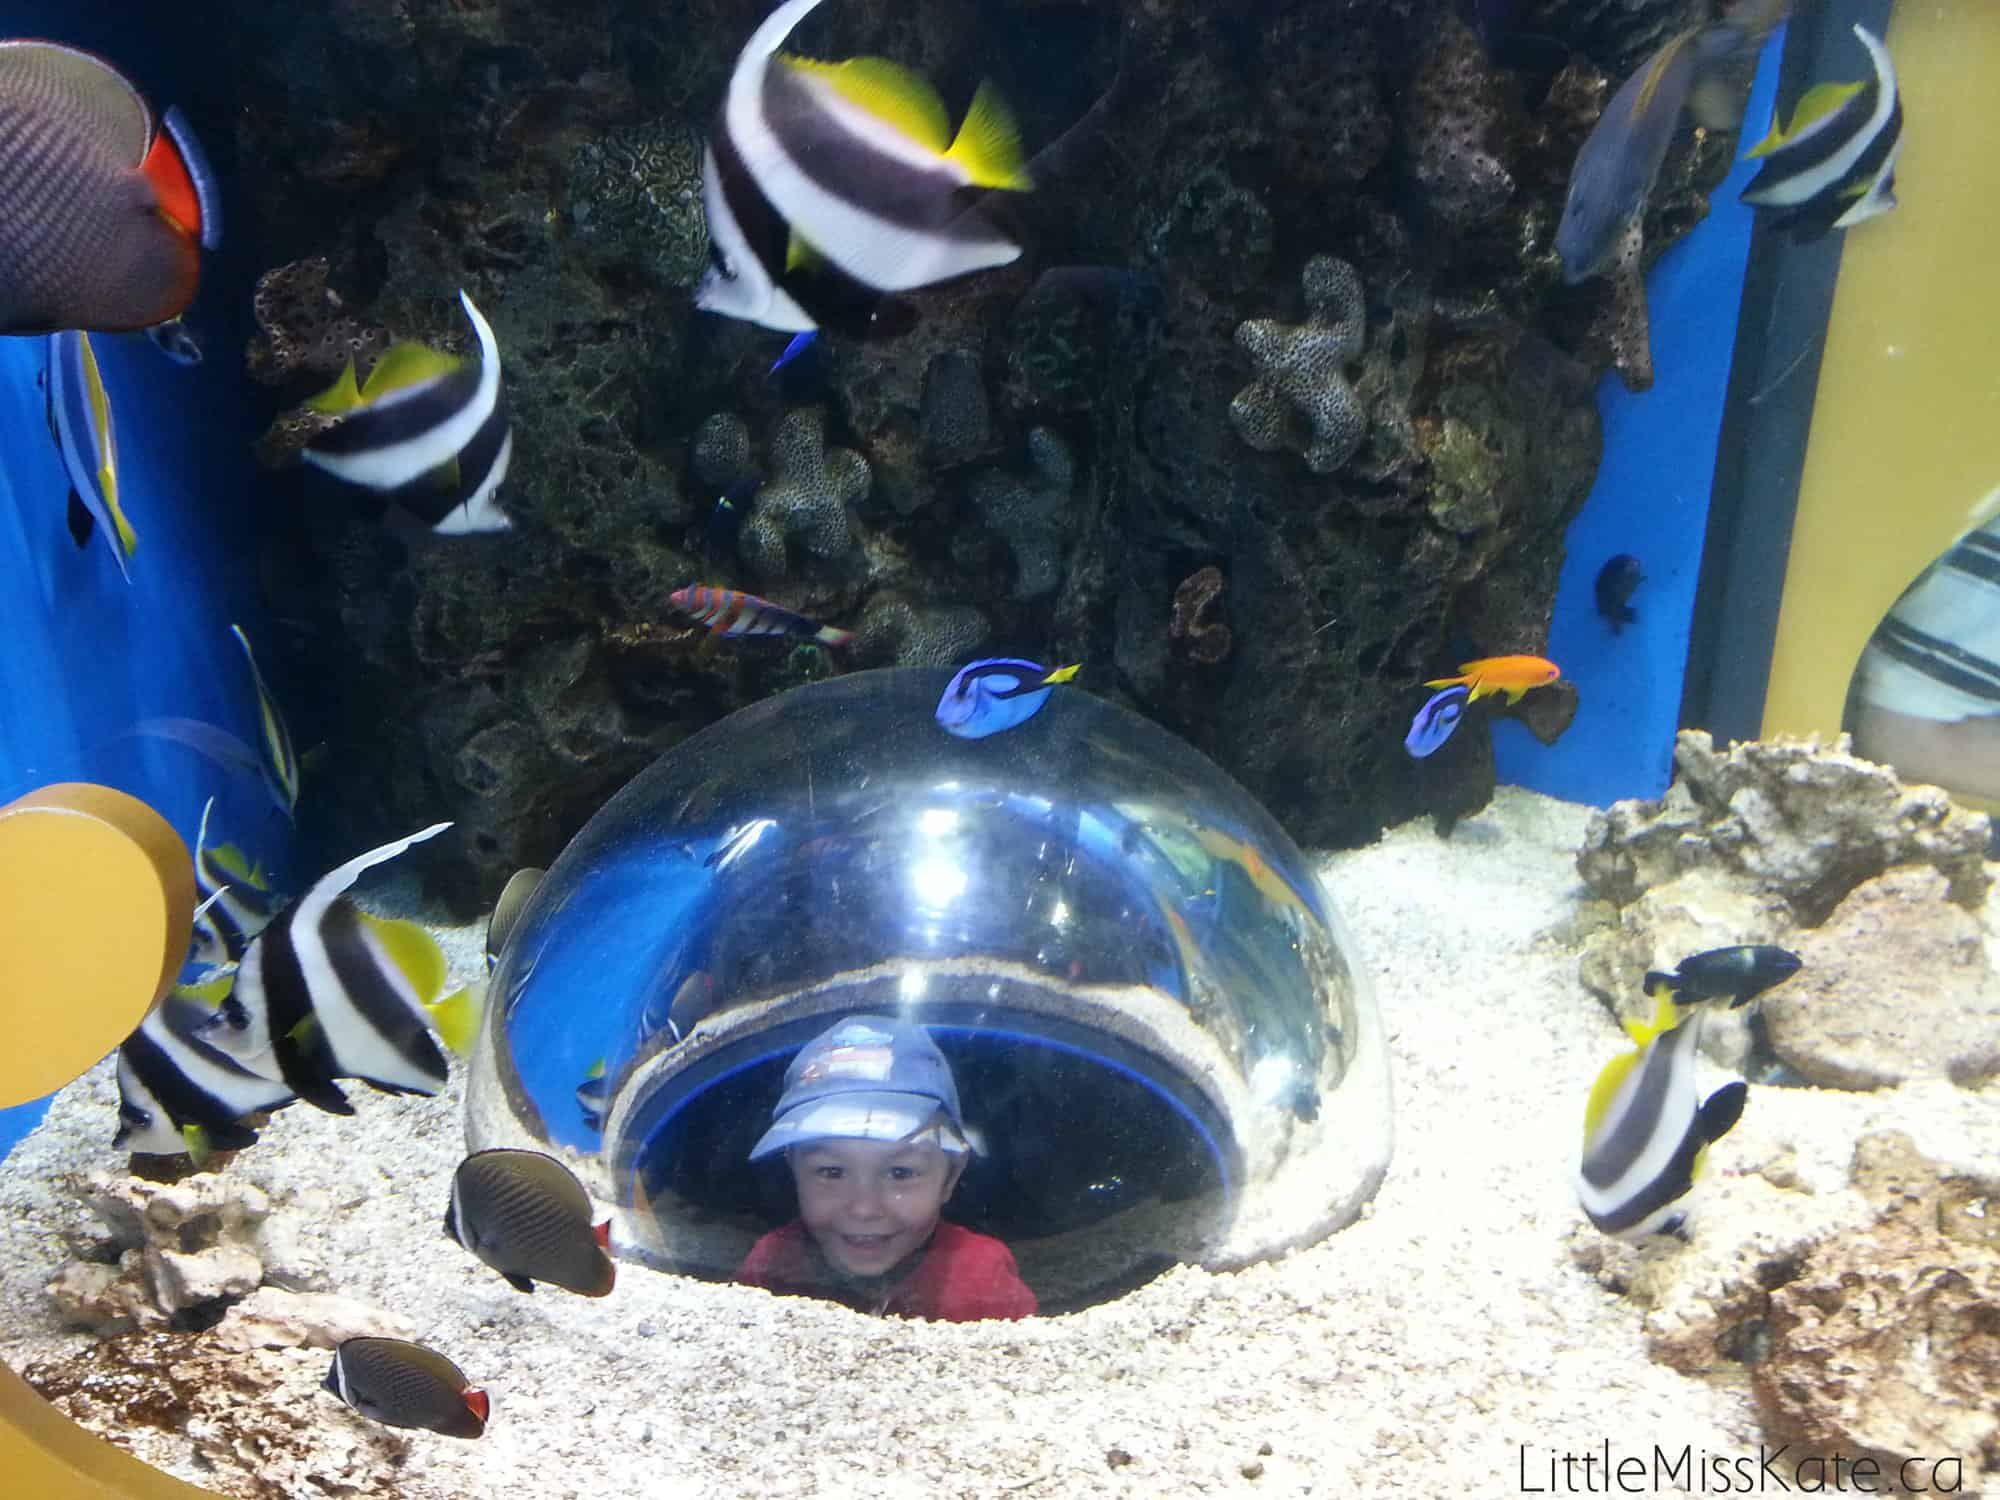 View the Underwater World Like Never Before at Adventure Aquarium - Little Miss Kate